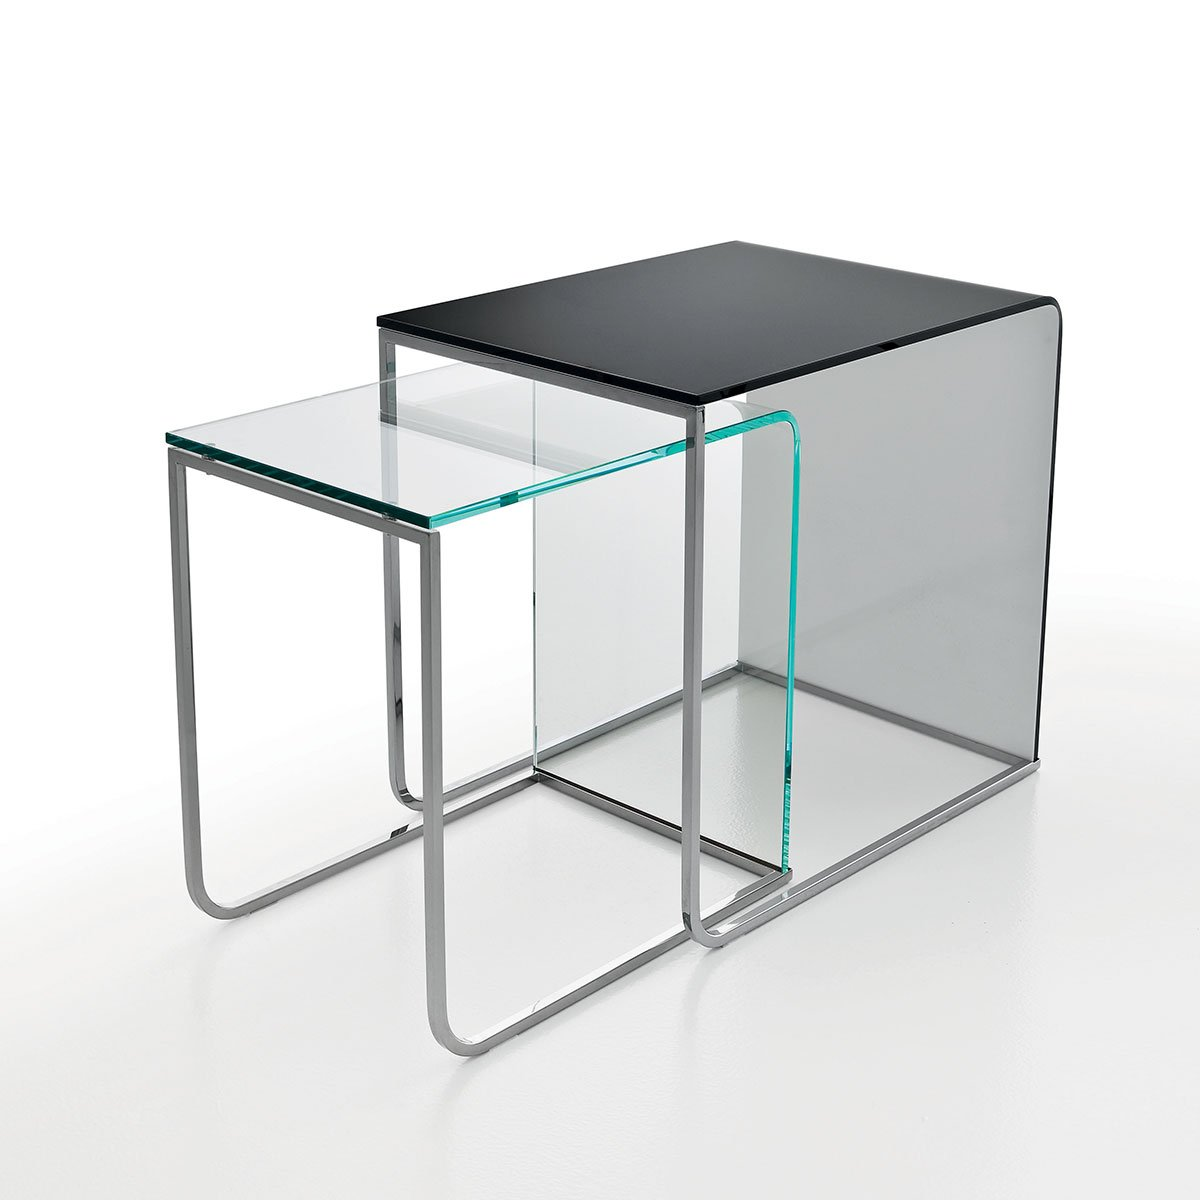 Nido glass and metal coffee table klarity glass furniture for Glass furniture